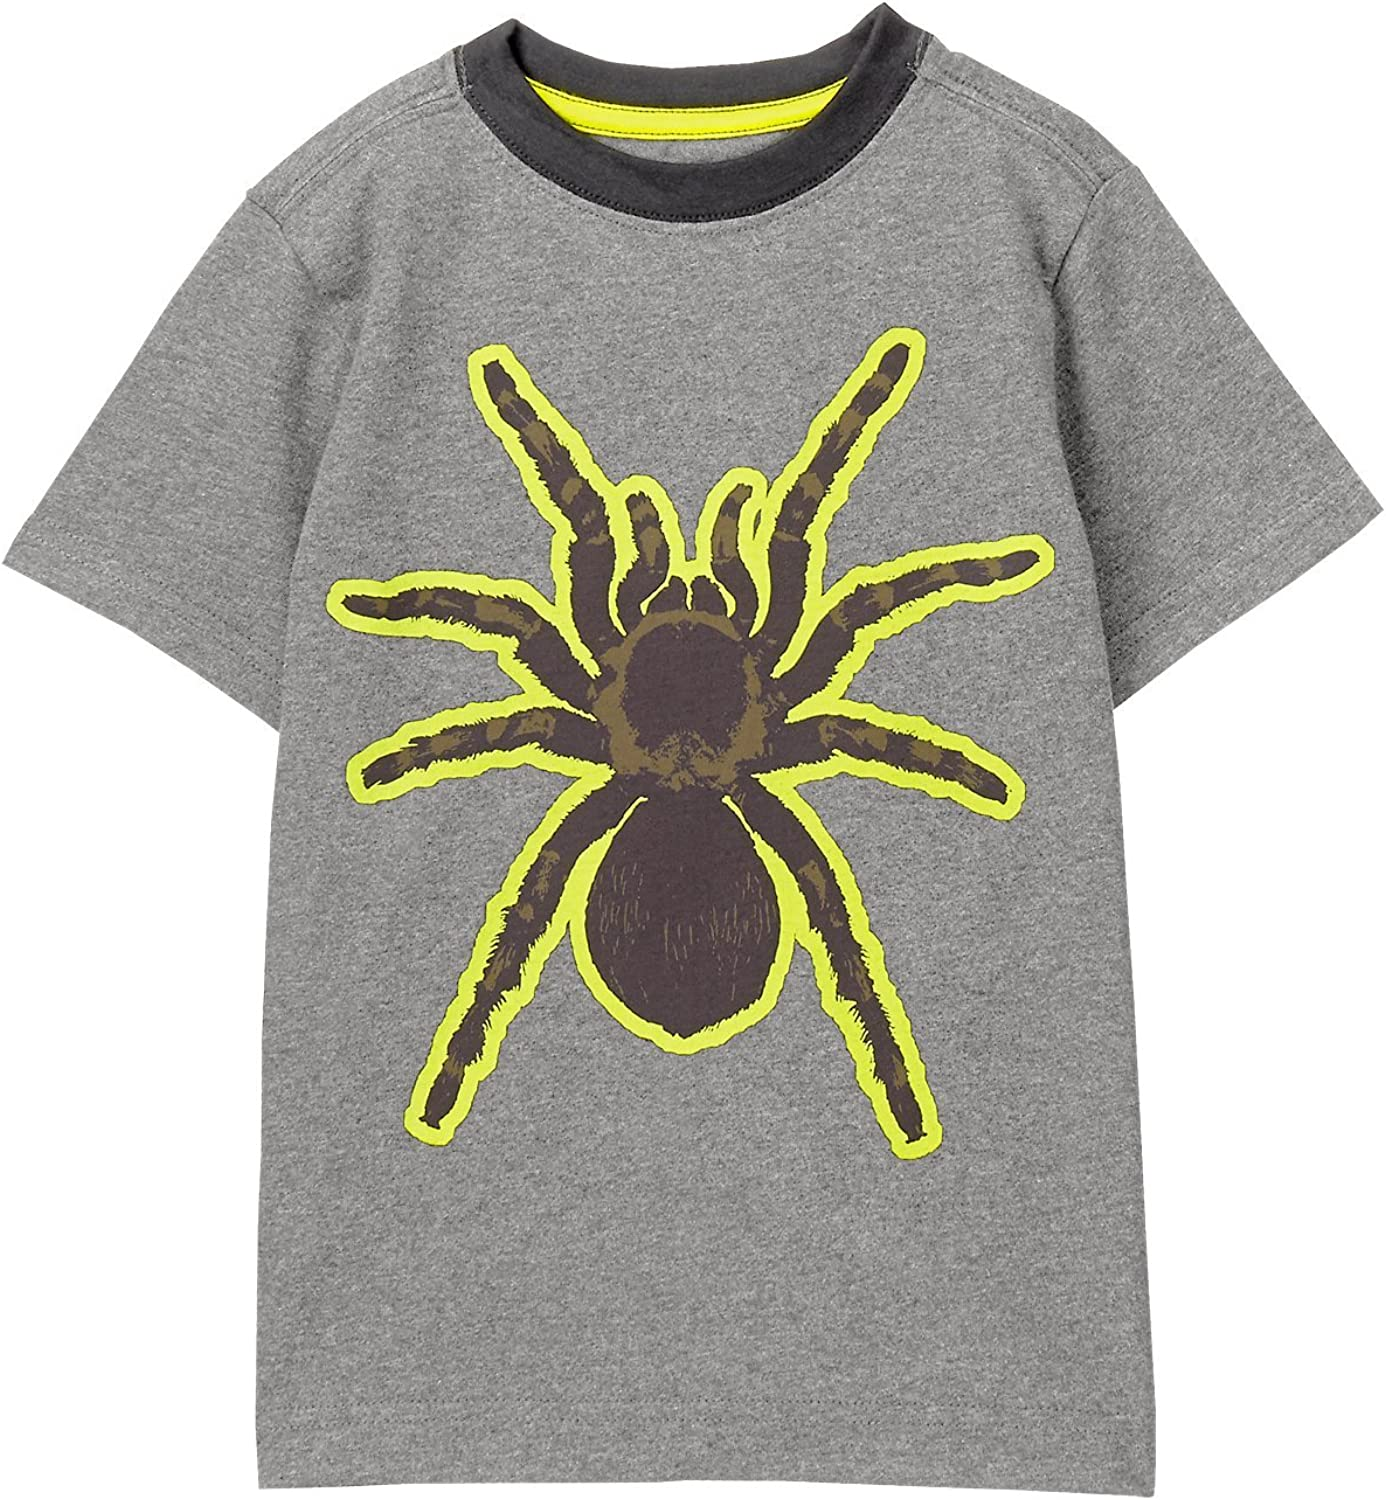 Gymboree Baby Boys Graphic Tee with Sleeve Graphic